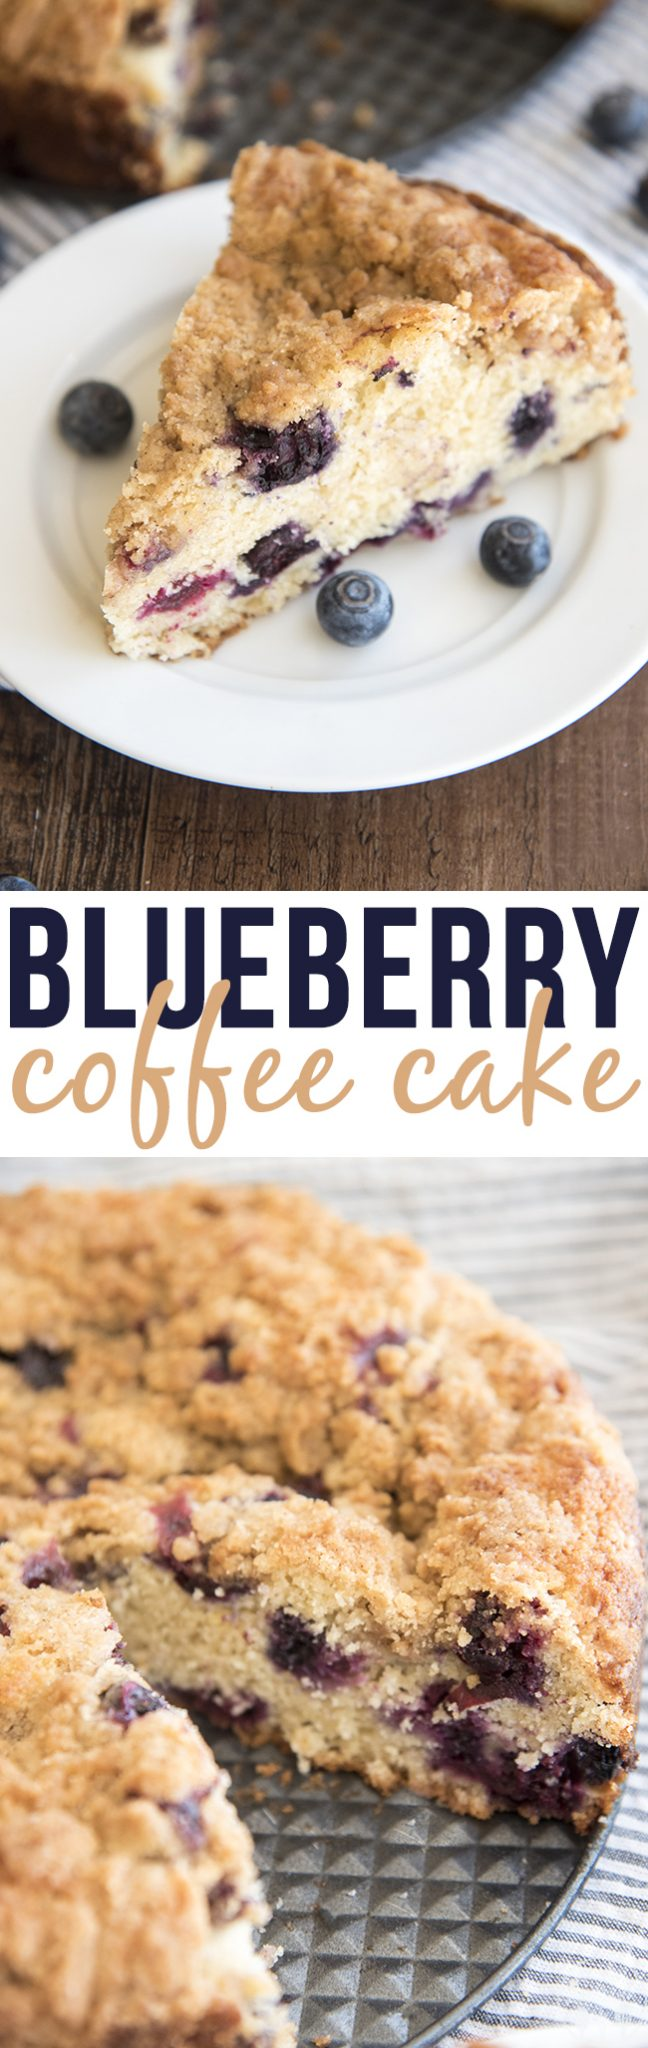 Blueberry Coffee Cake - This blueberry coffee cake is soft, sweet and loaded full of blueberries topped with the the best cinnamon sugary streusel crumble on top!